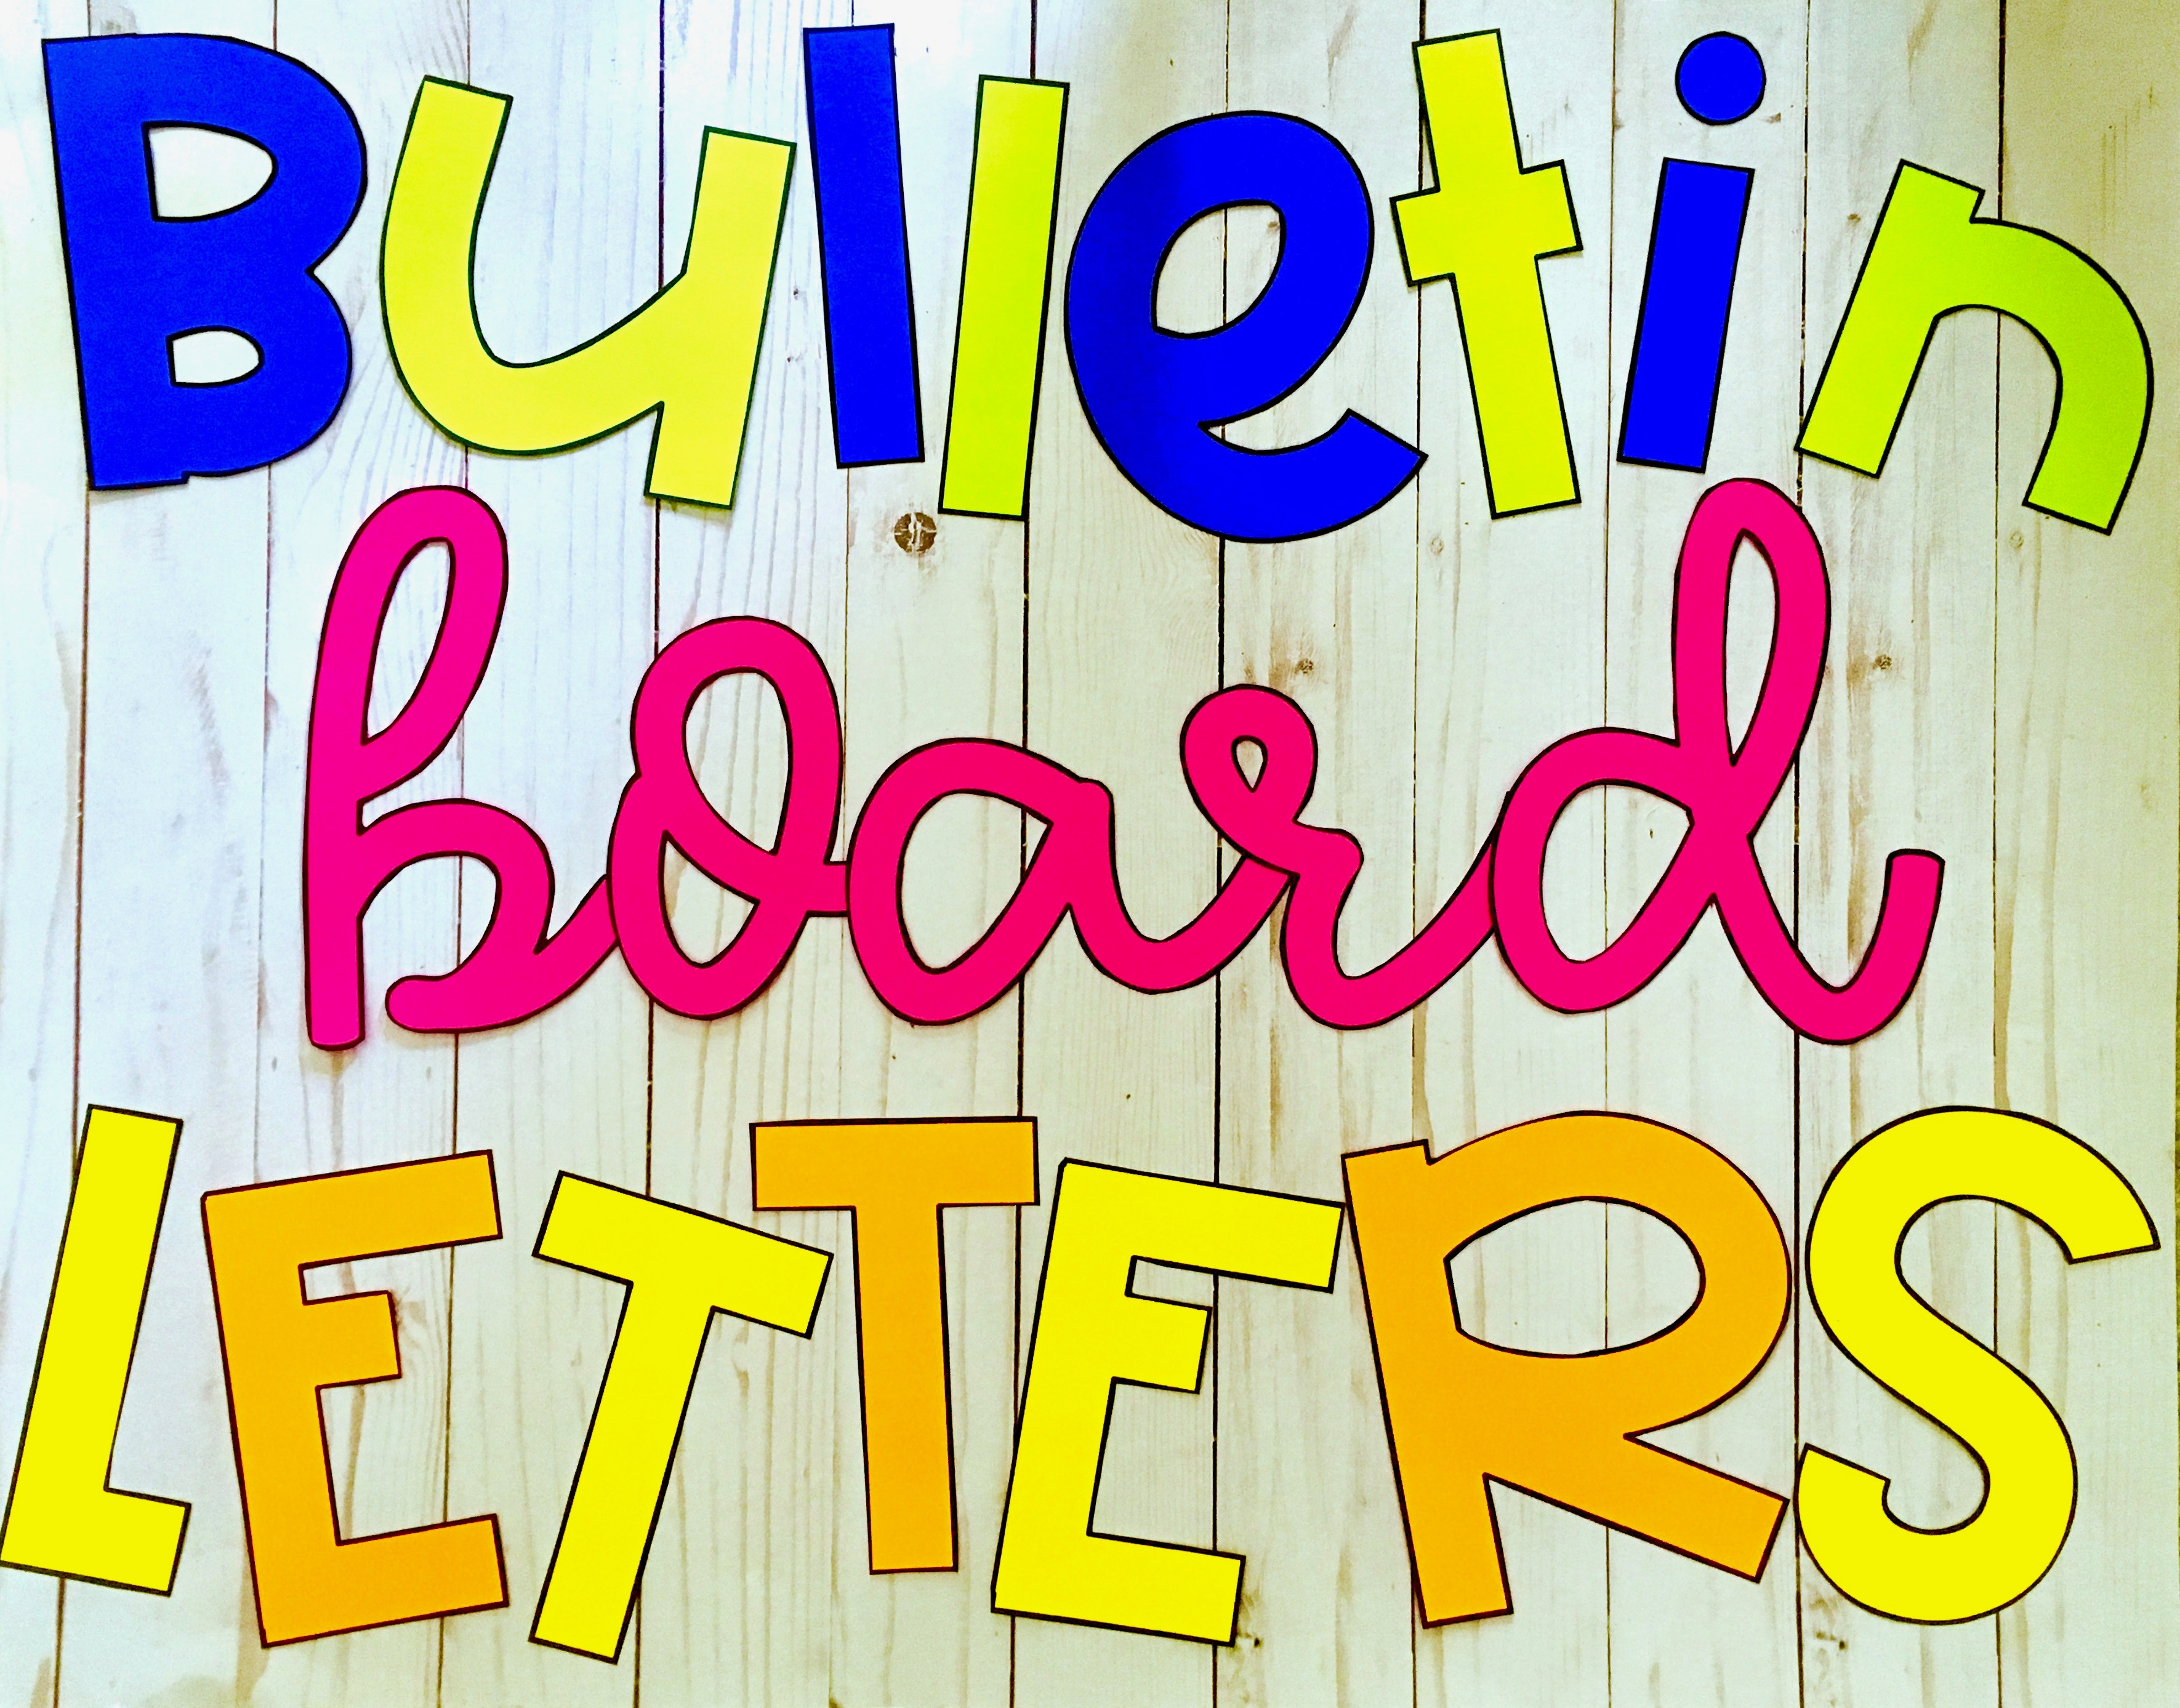 It's just a photo of Free Printable Letters for Bulletin Boards for personal